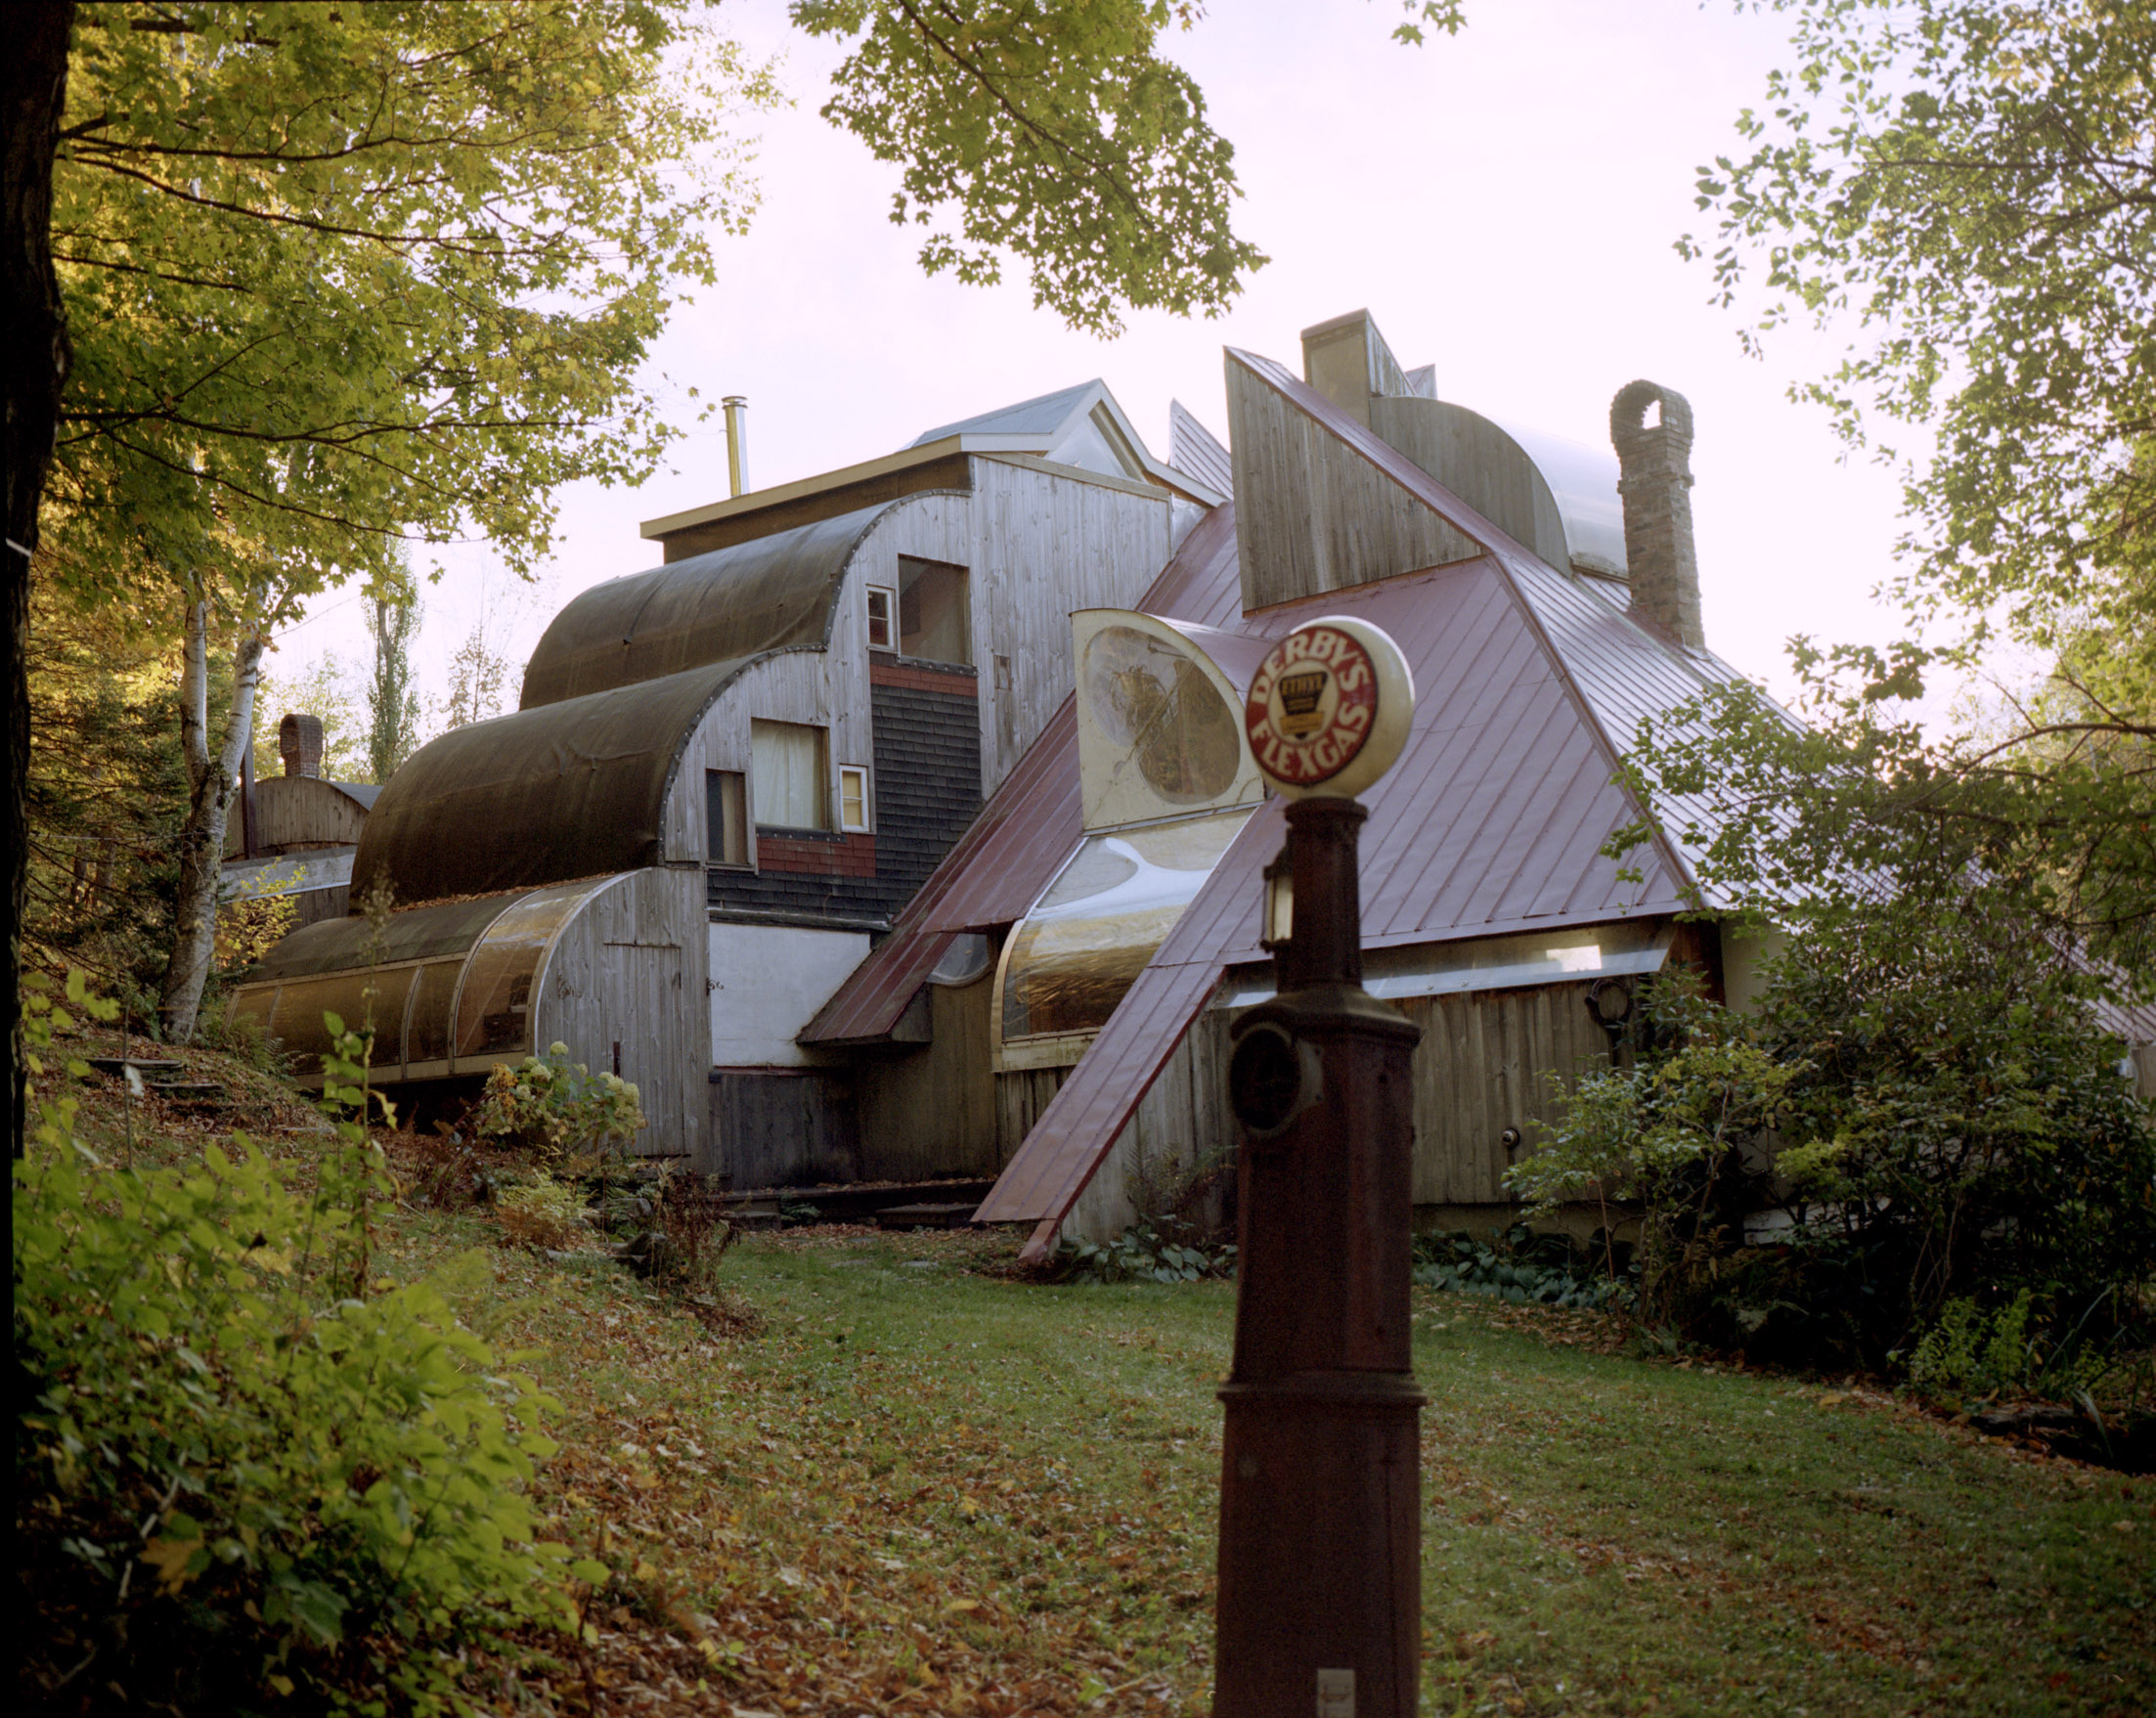 The Tack House (1966)